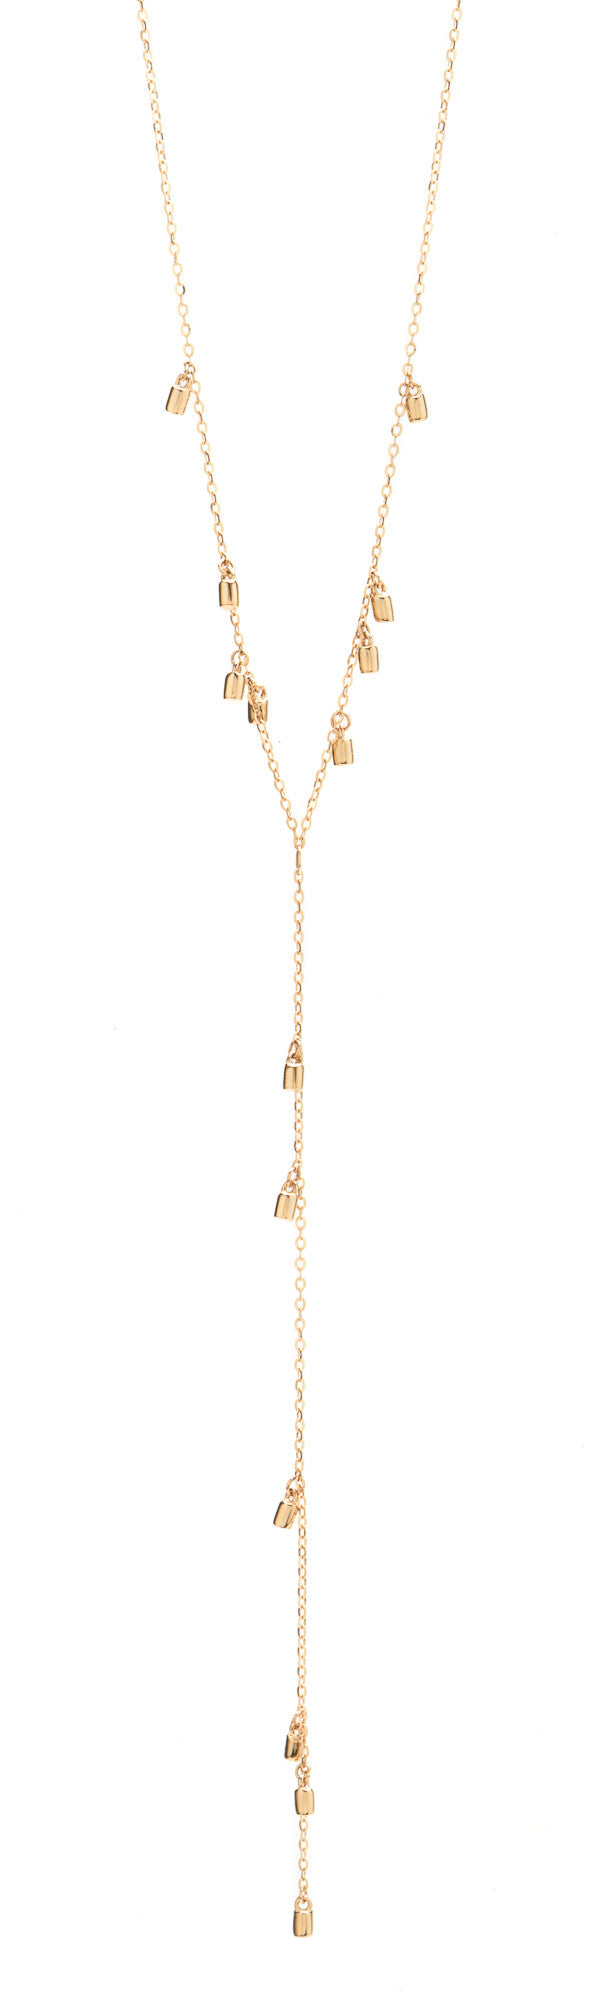 Gold Fairy Dust Lariat Necklace